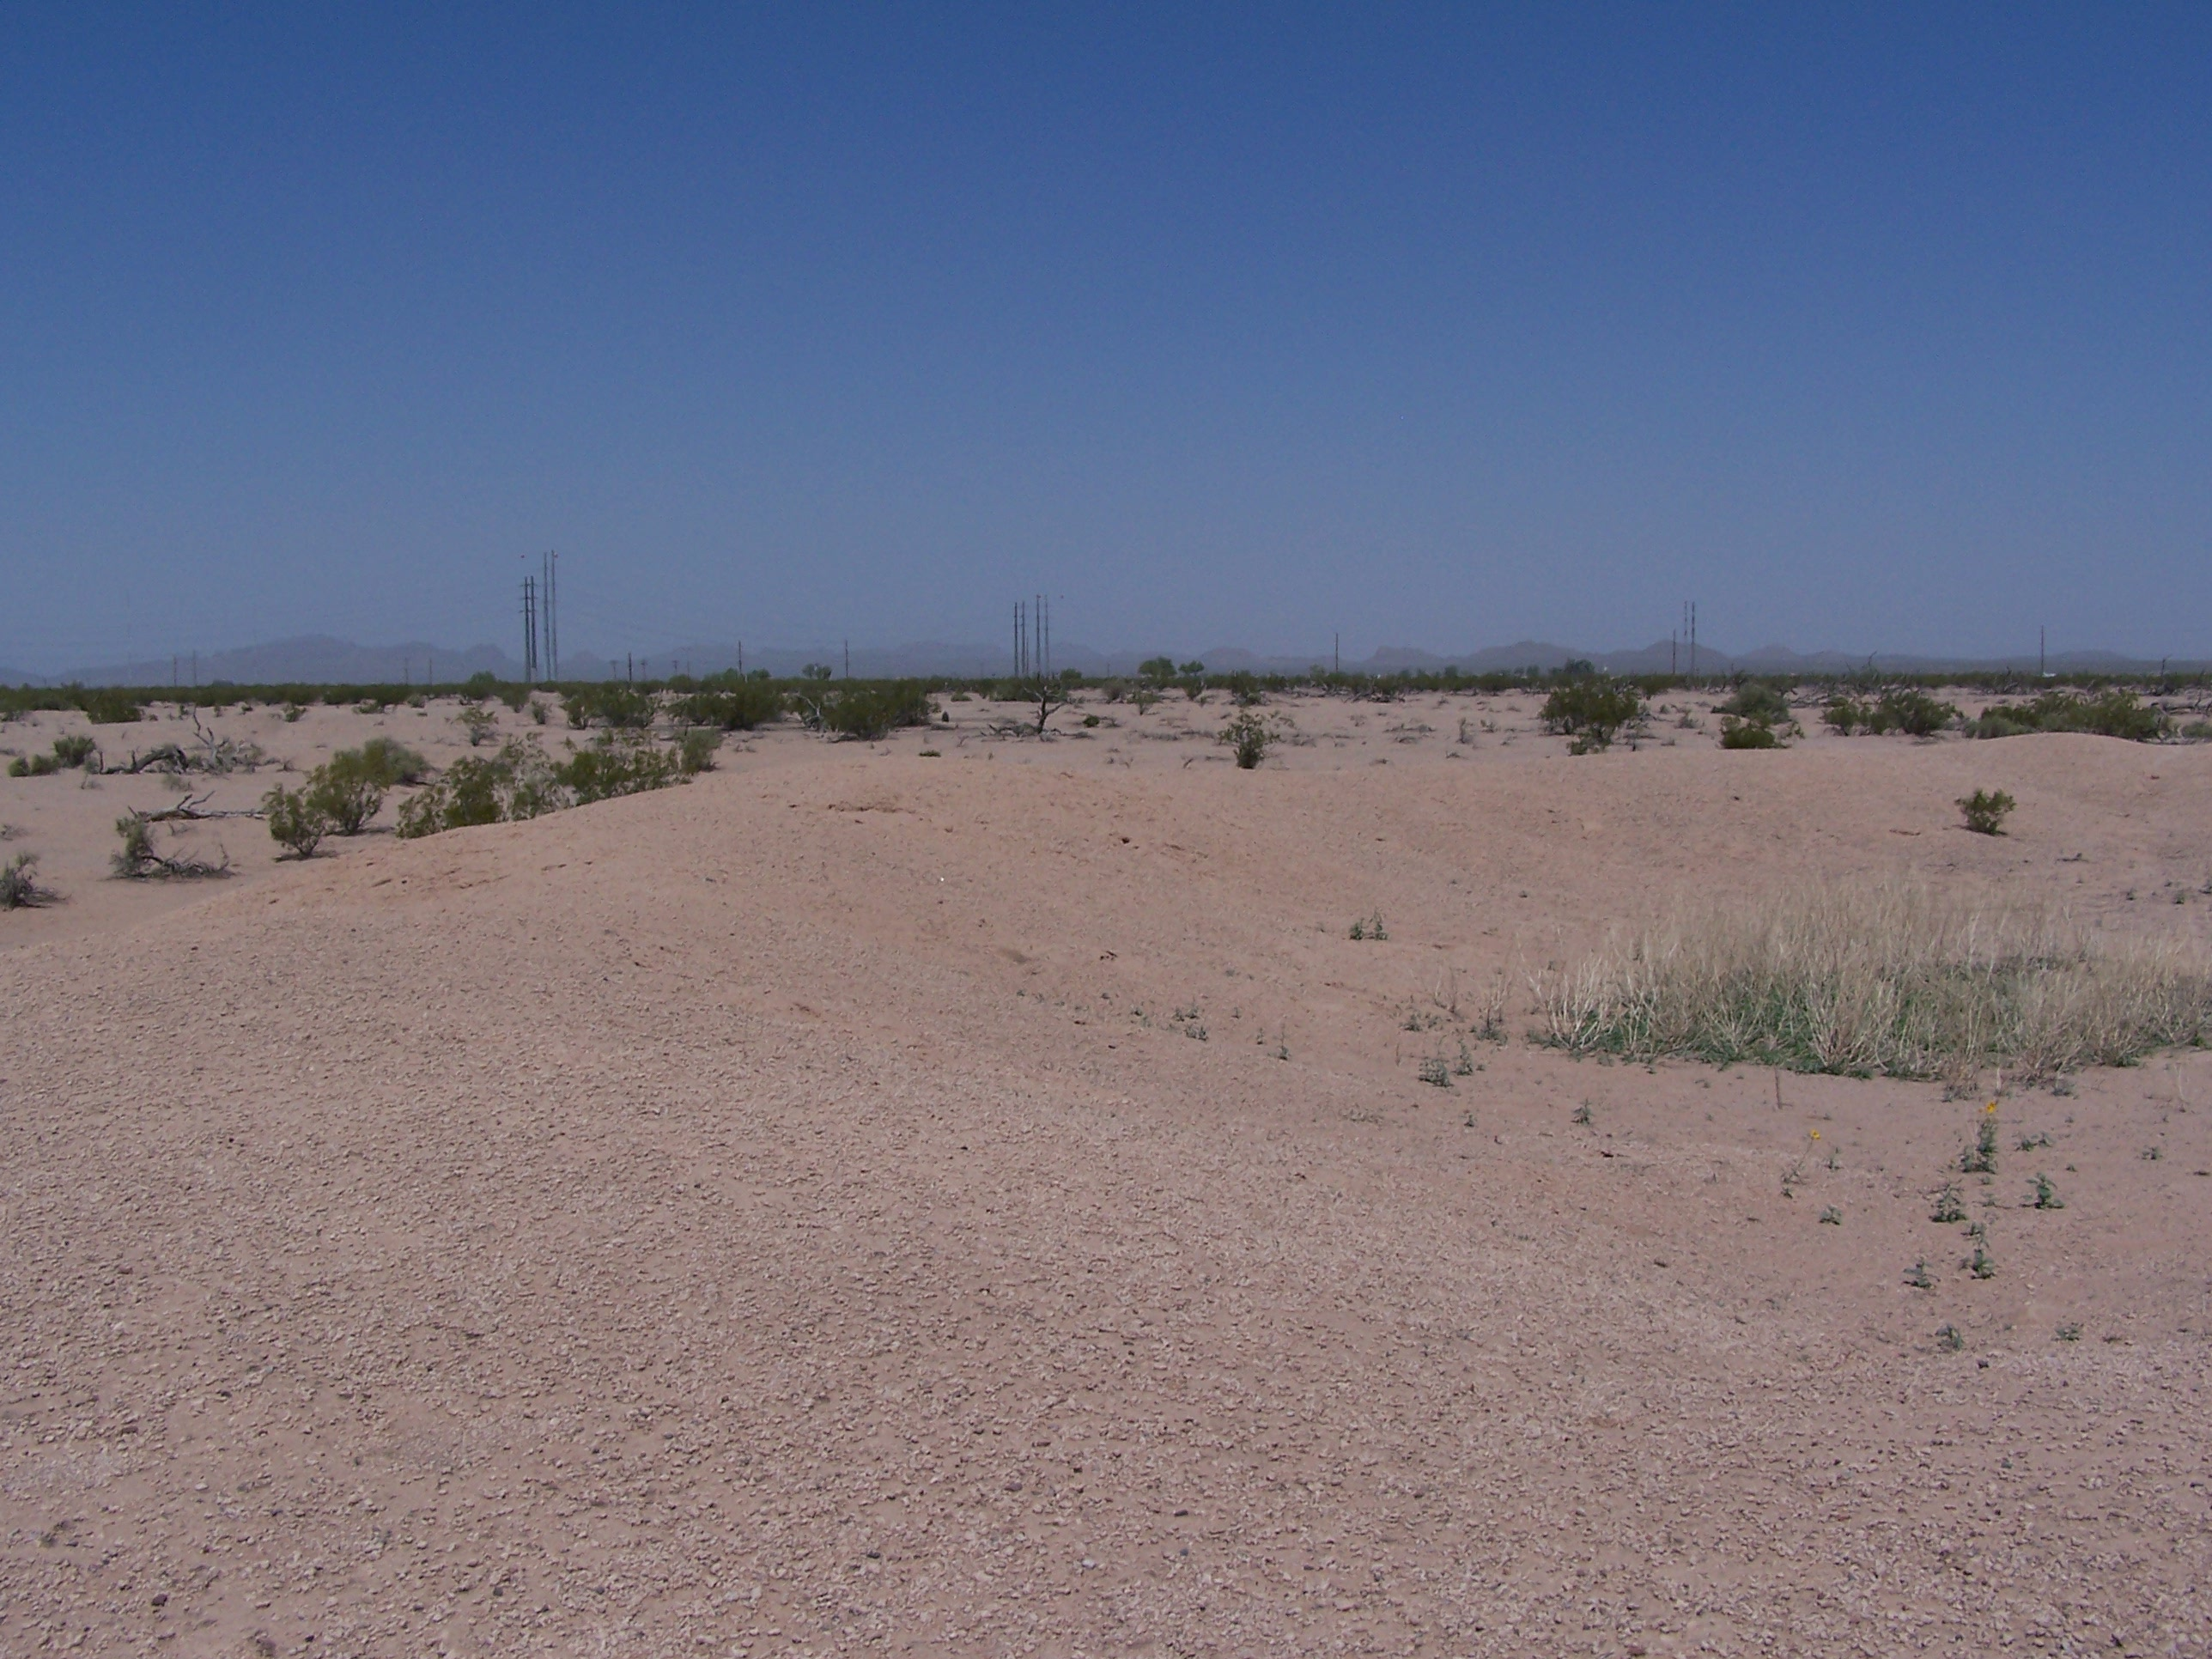 The desert seems featureless and empty